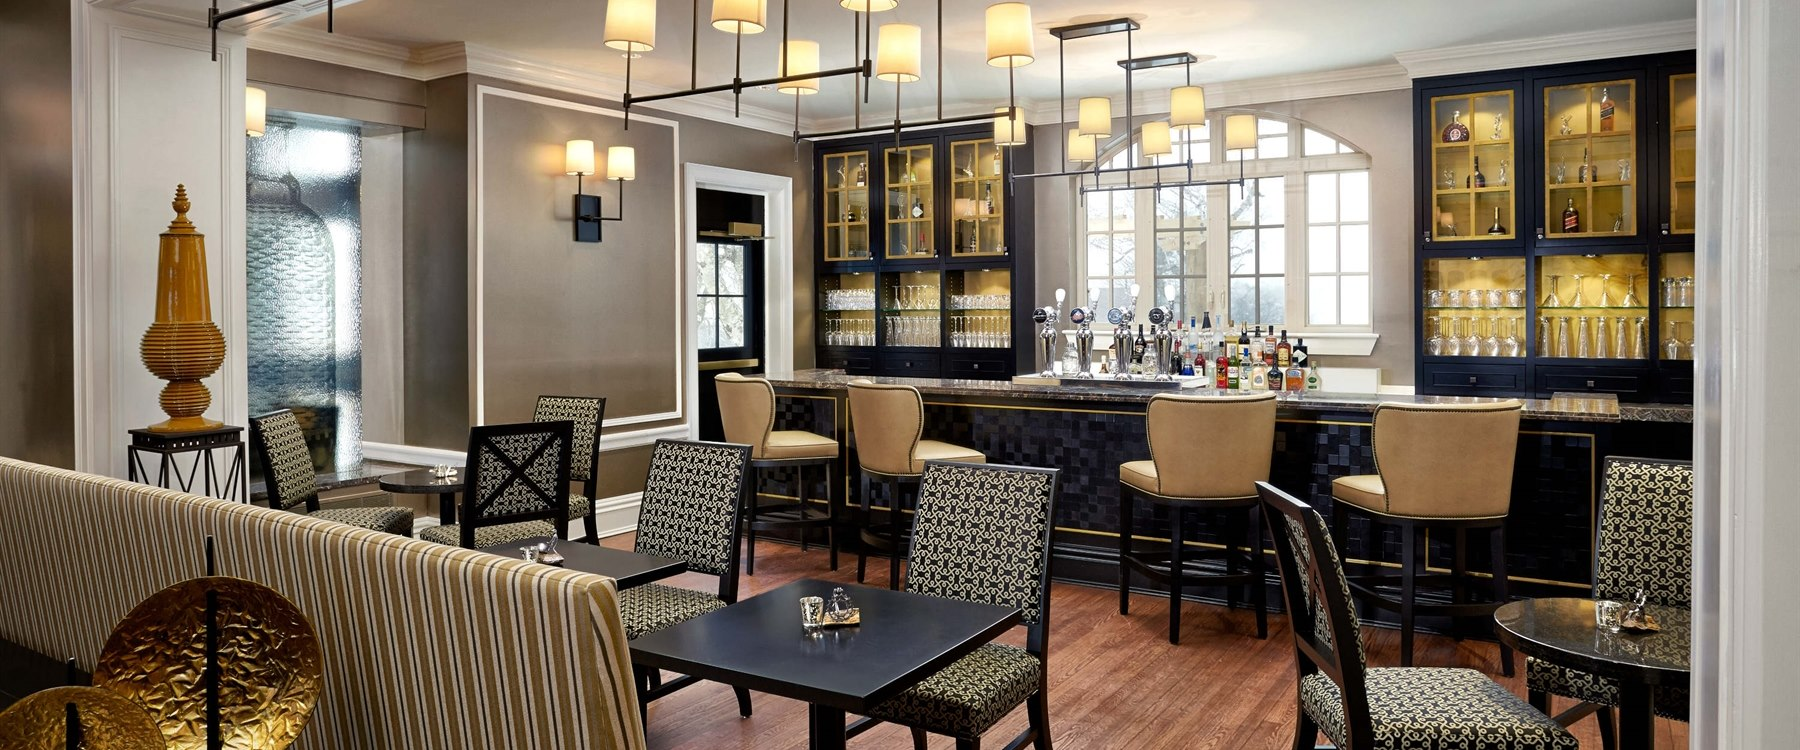 Braxton bar at The Algonquin Resort, St. Andrews